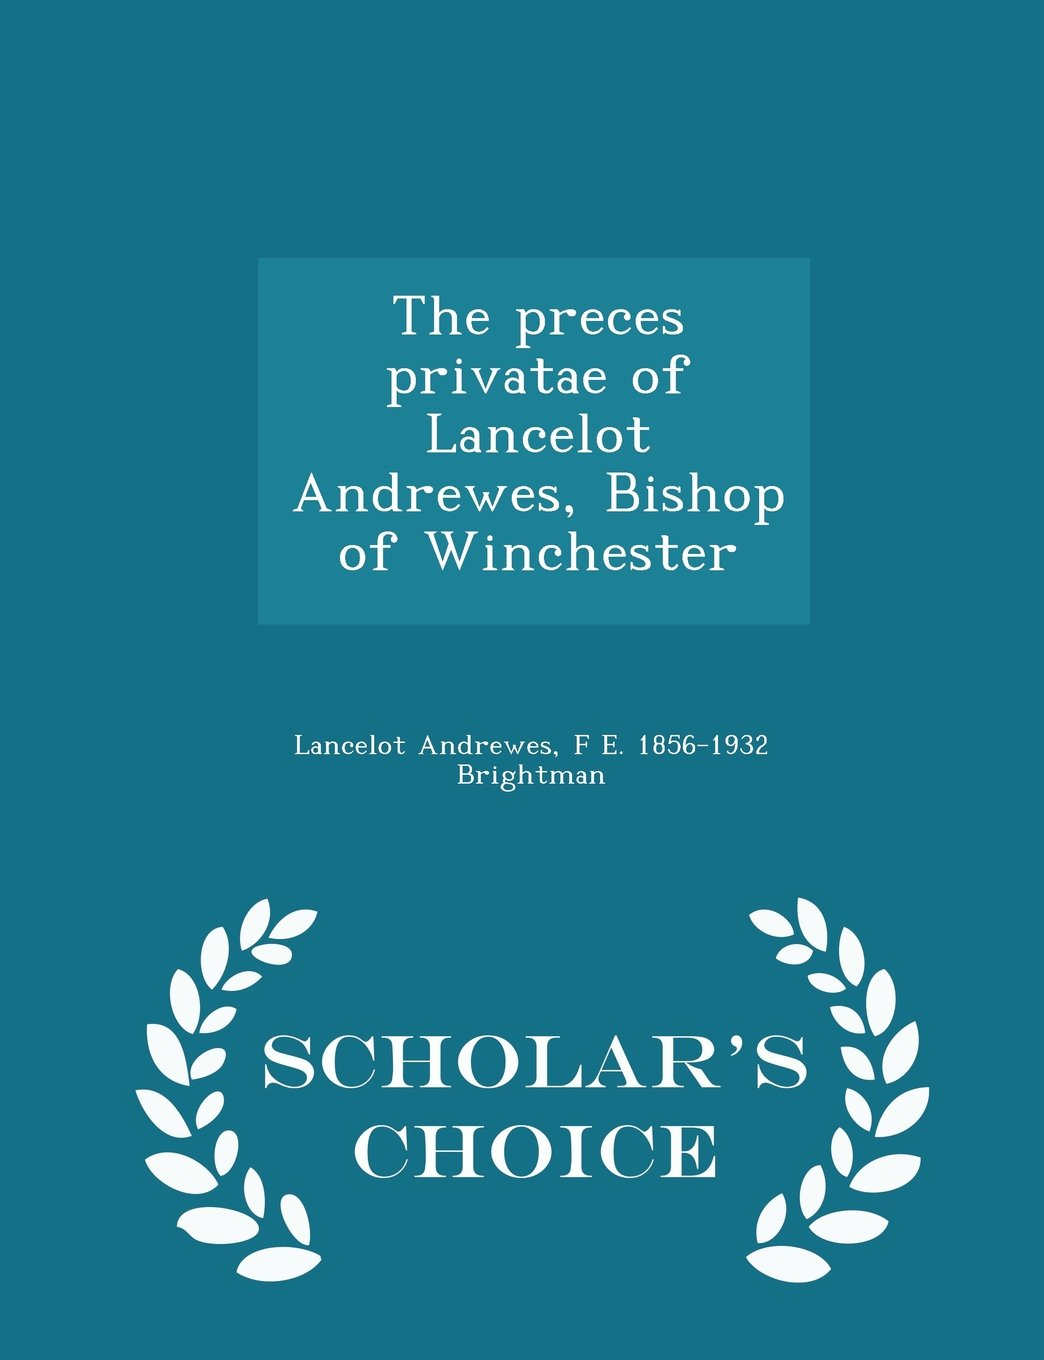 Download The preces privatae of Lancelot Andrewes, Bishop of Winchester  - Scholar's Choice Edition ebook